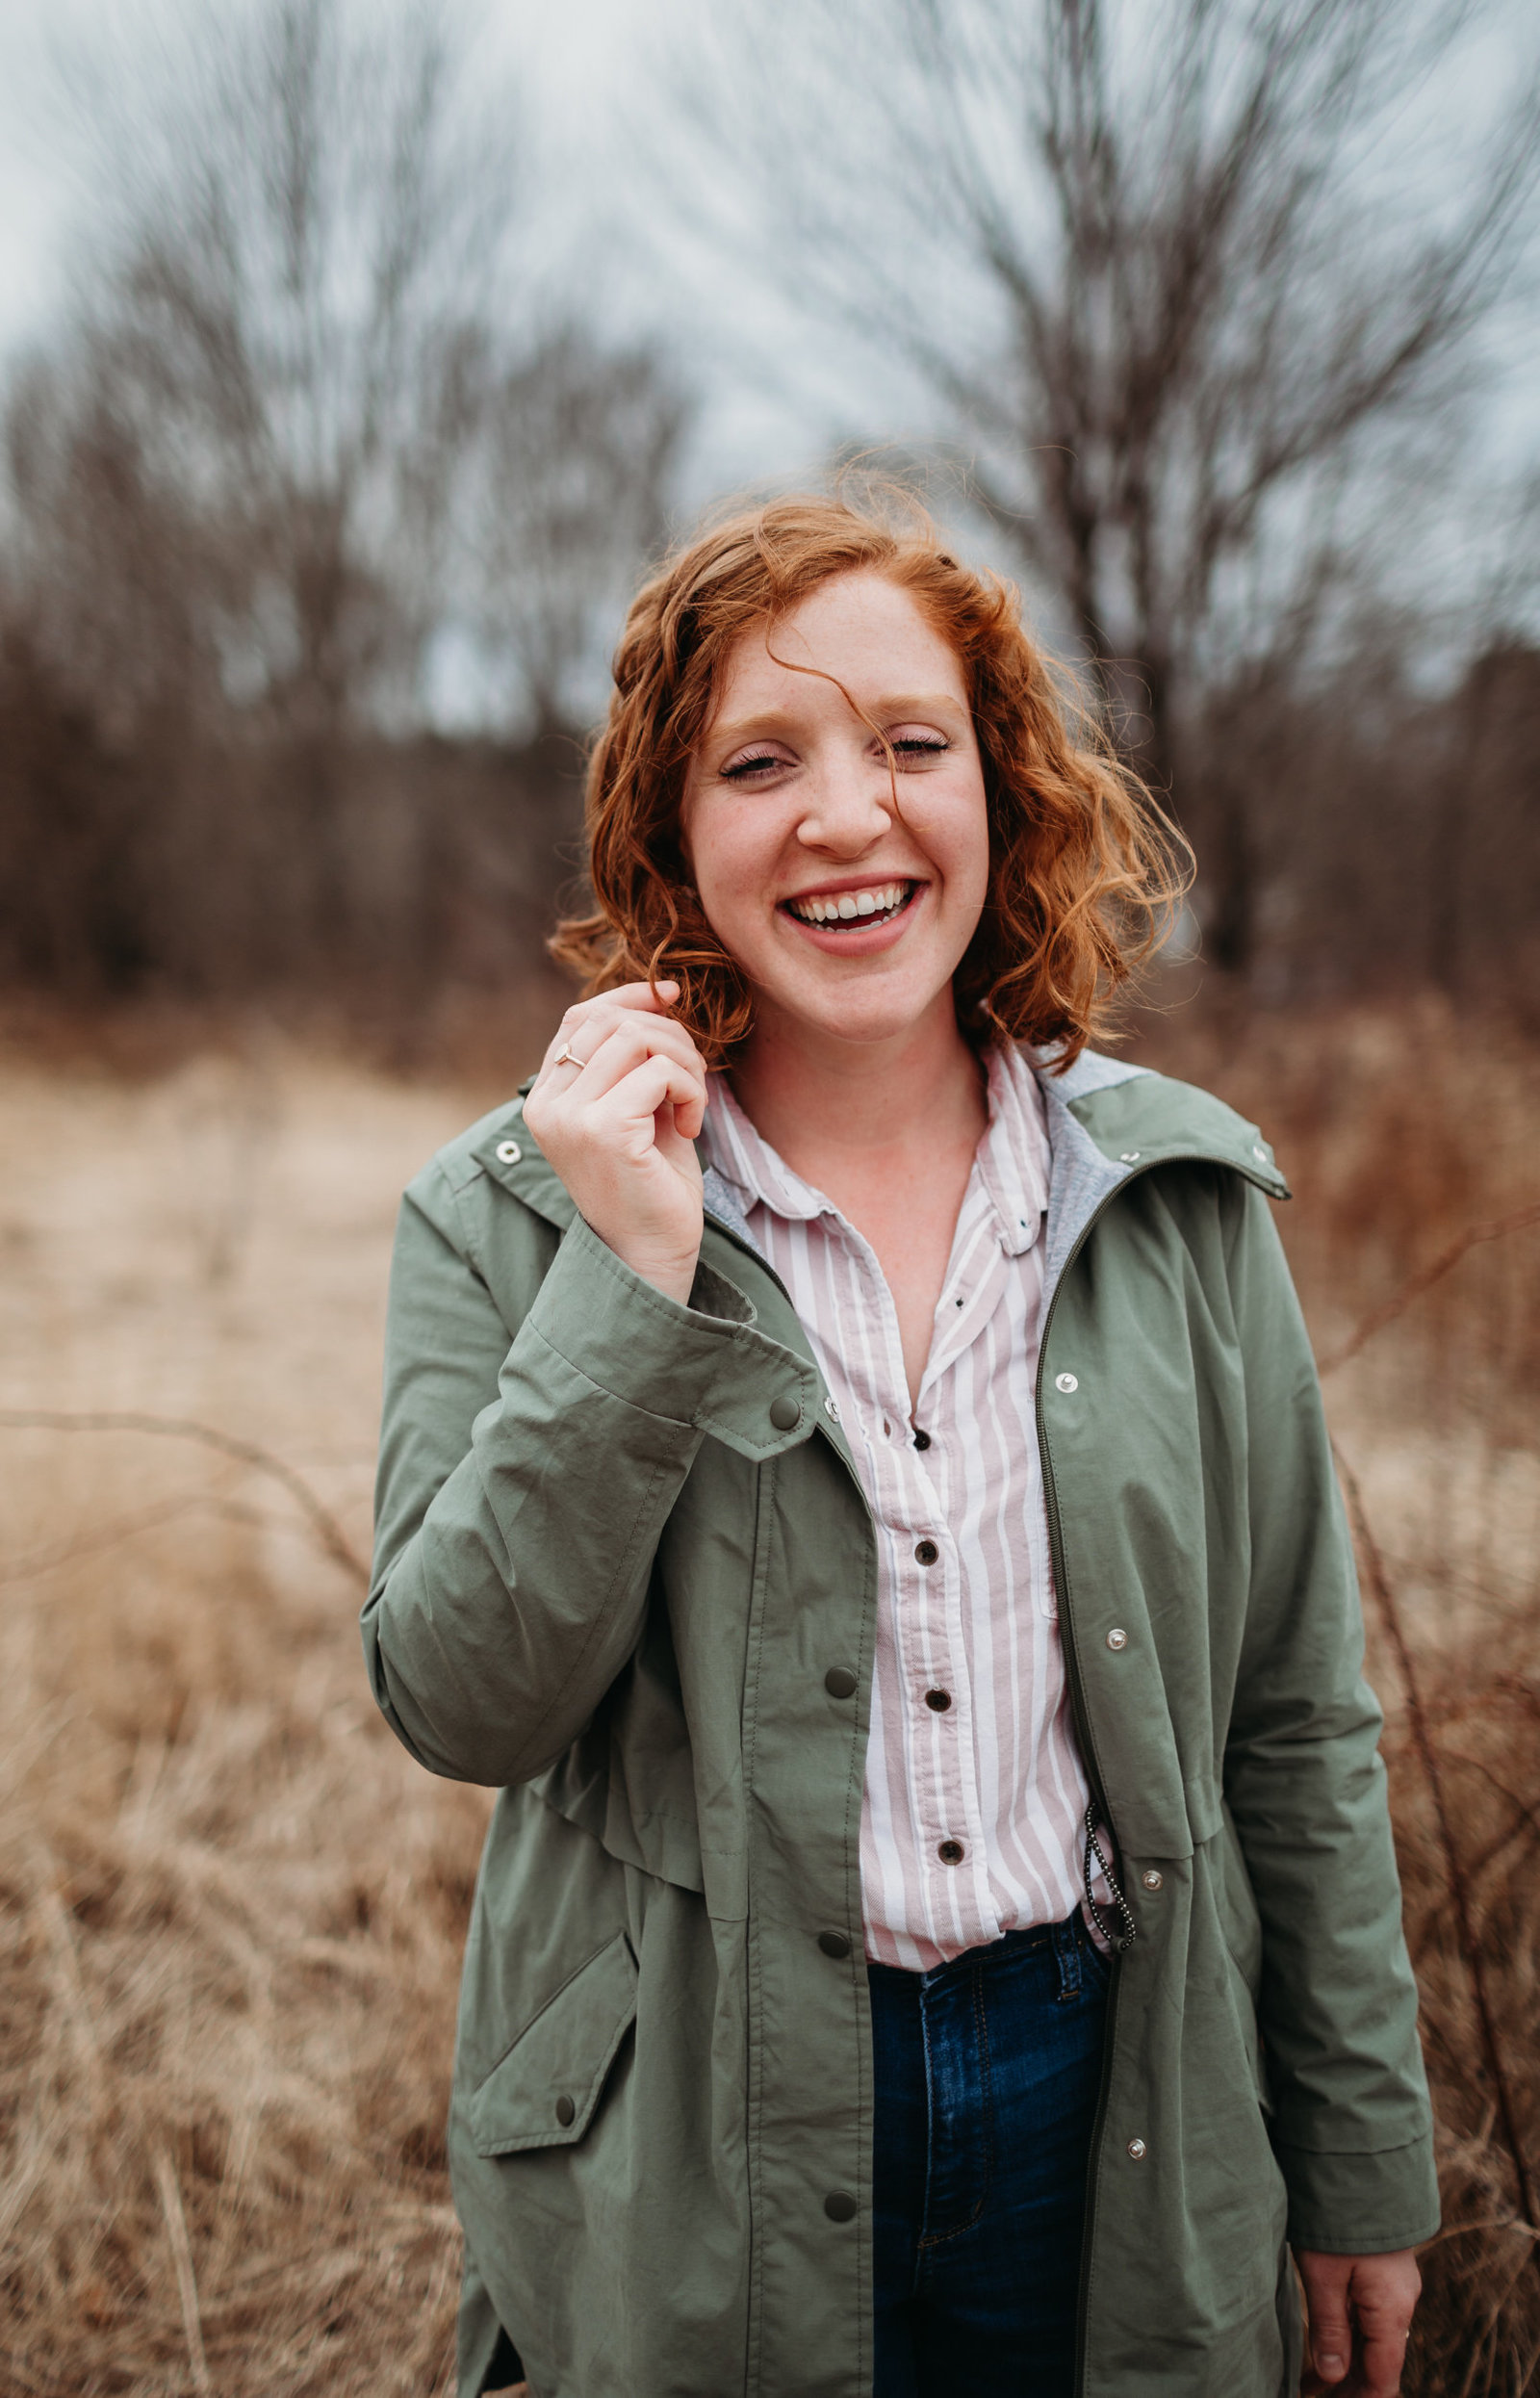 redheaded woman grabs hair and laughs at camera during headshot session